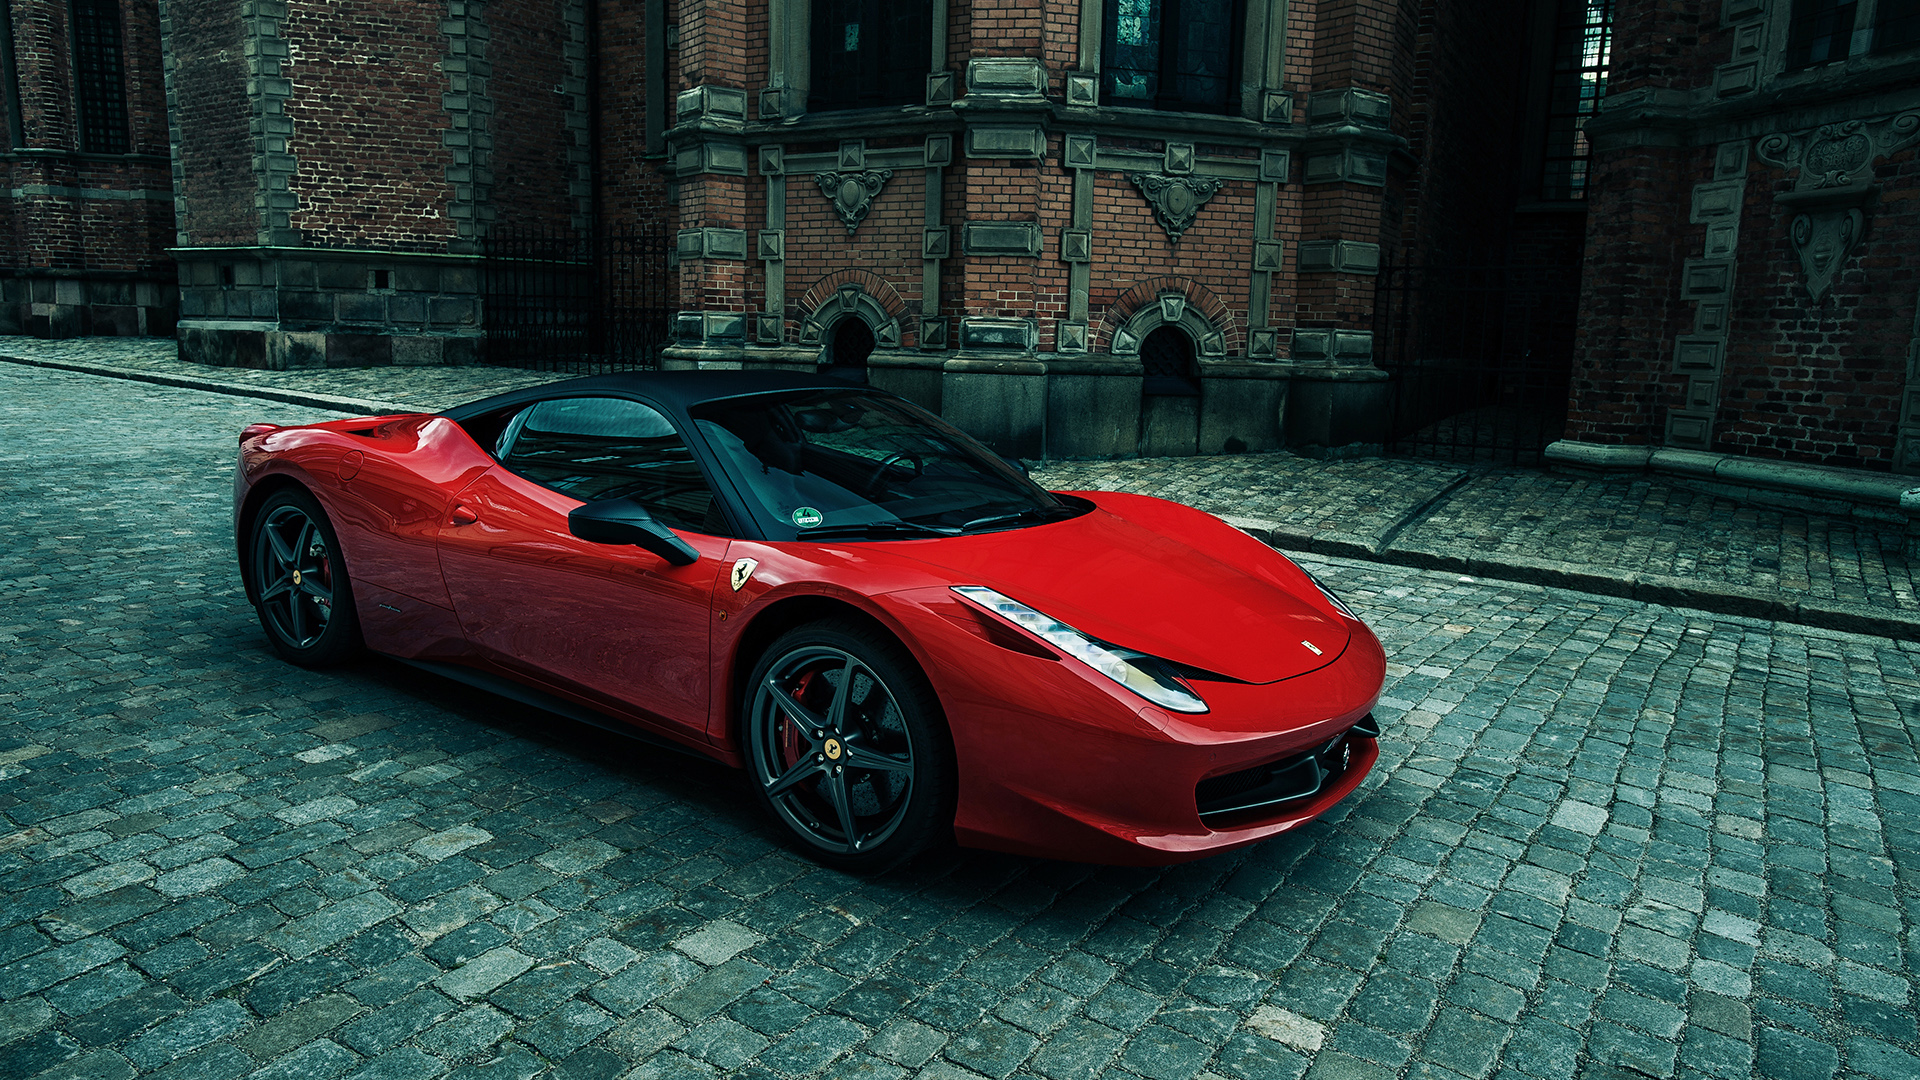 Sporty Ferrari 458 Italia Wallpaper  Hd Car Wallpapers